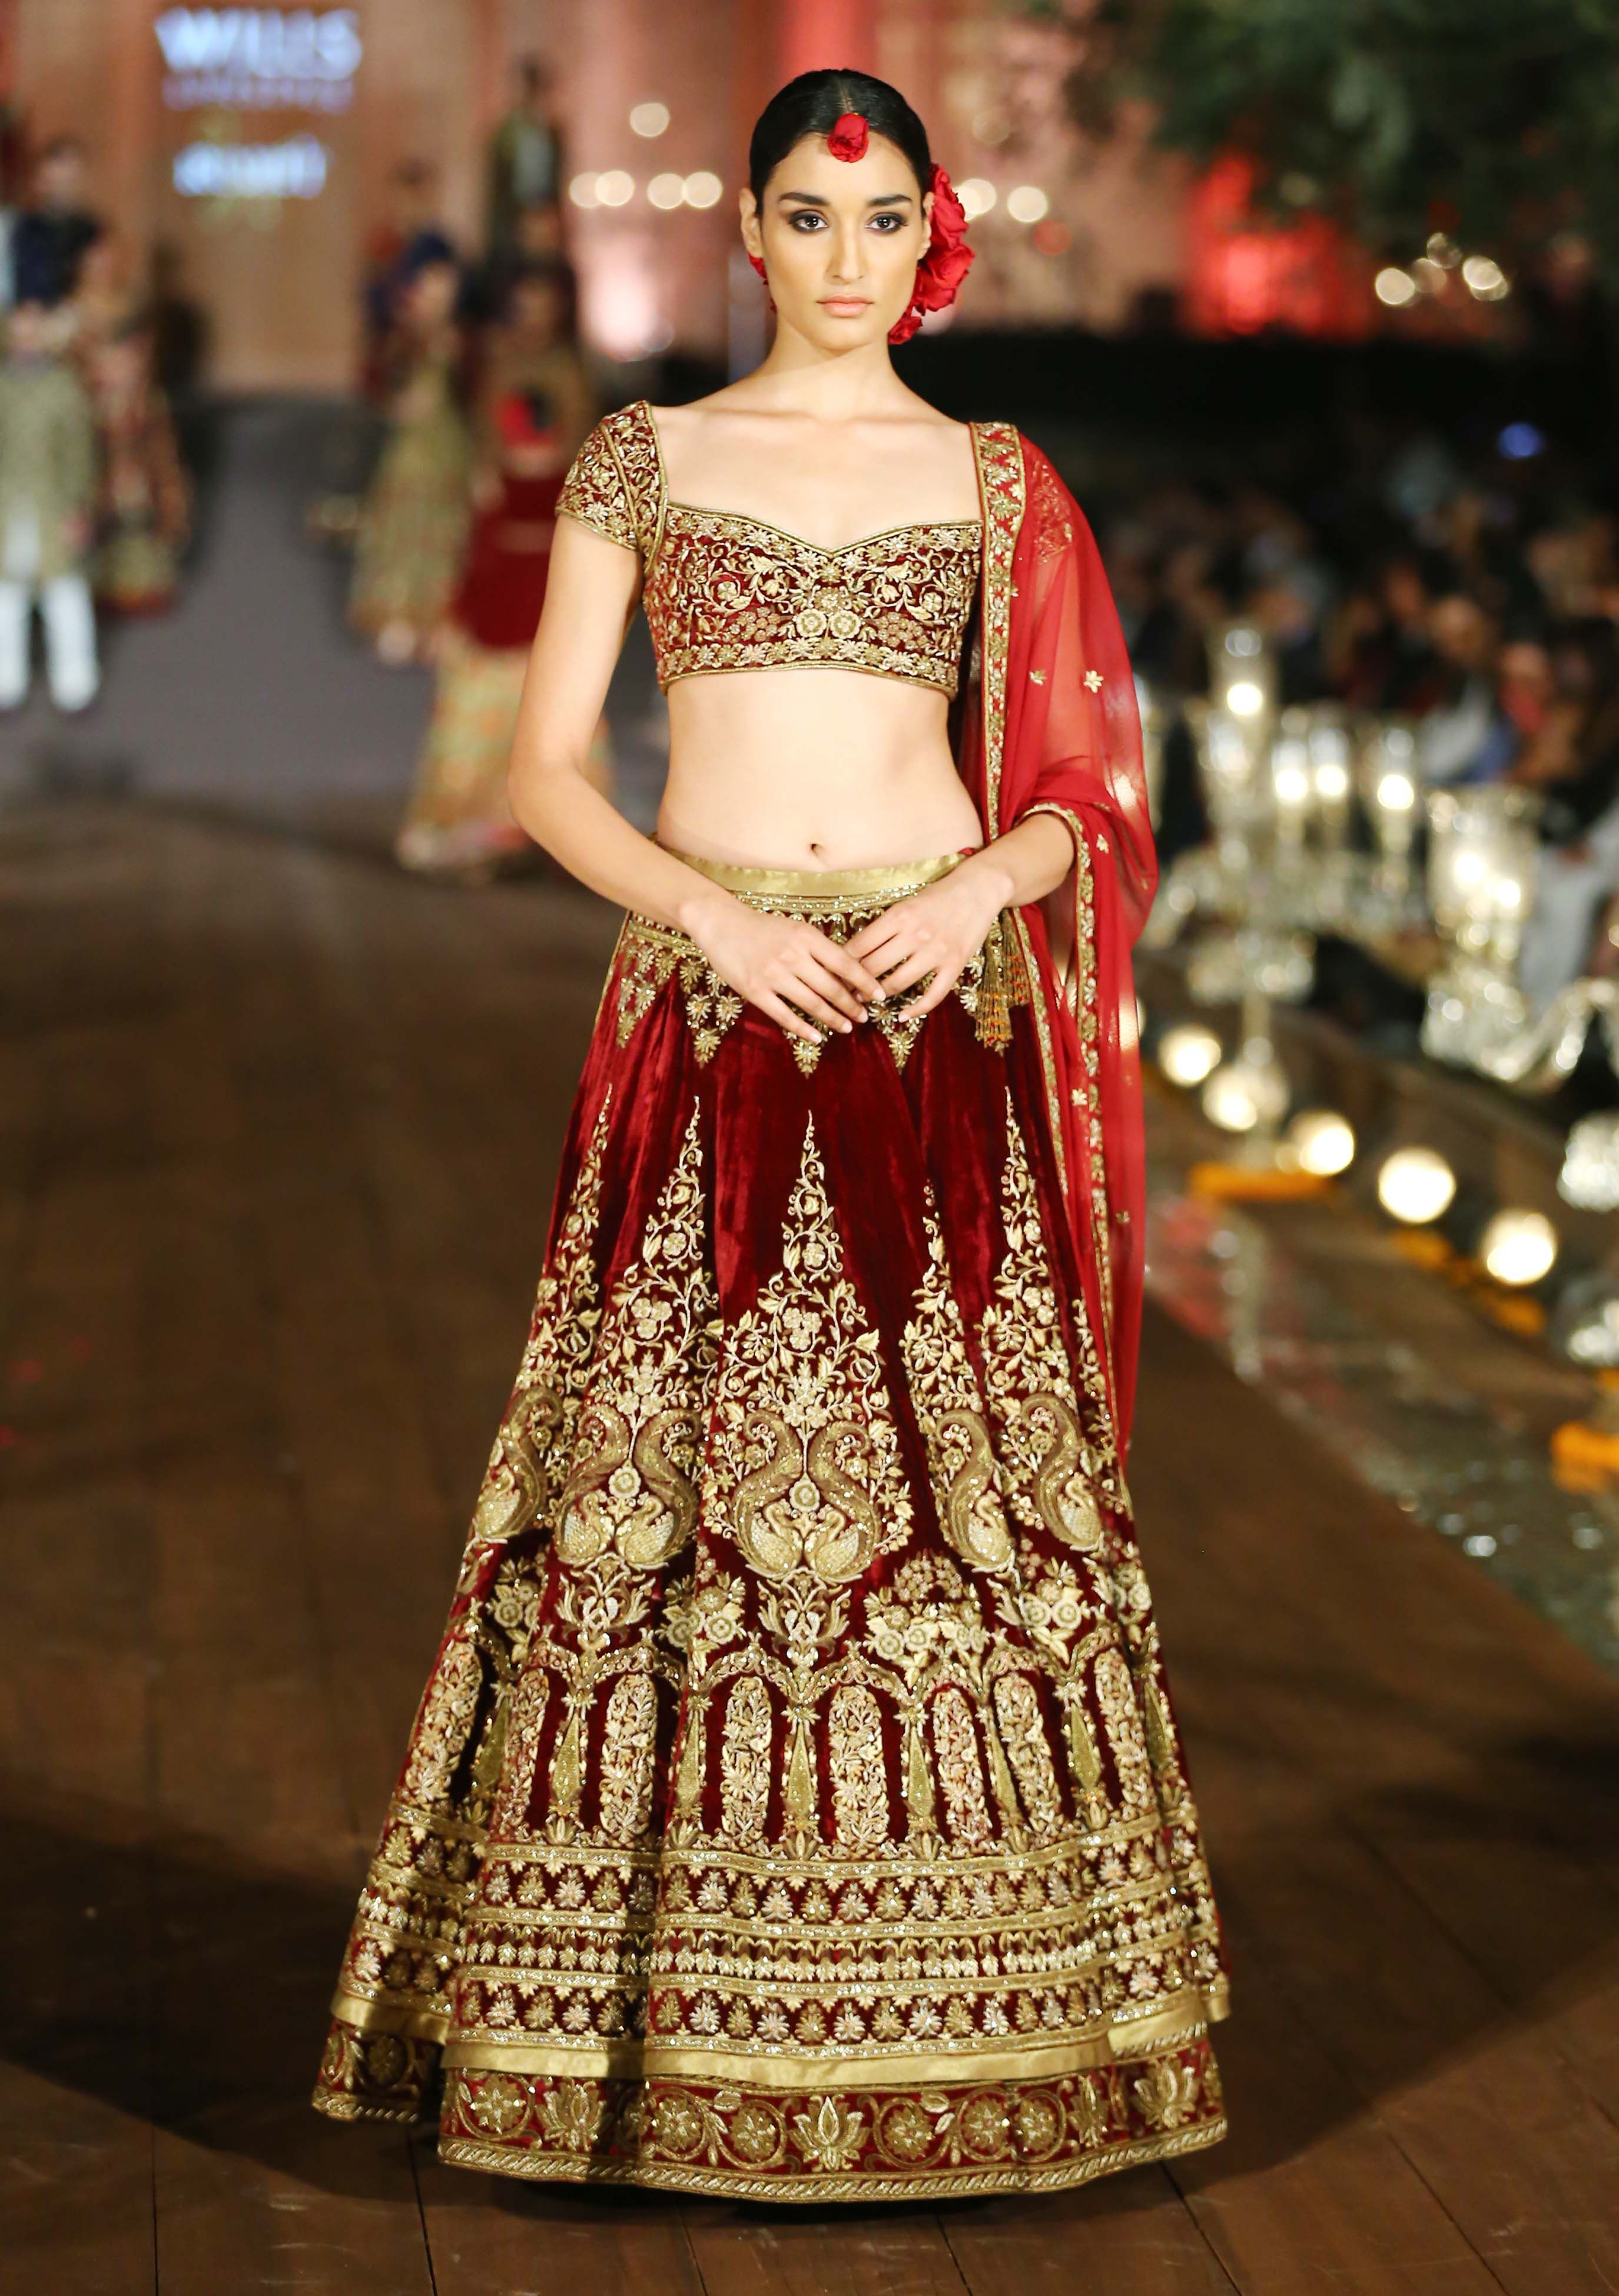 Still swooning over this bridal lehenga from Rohit Bal's